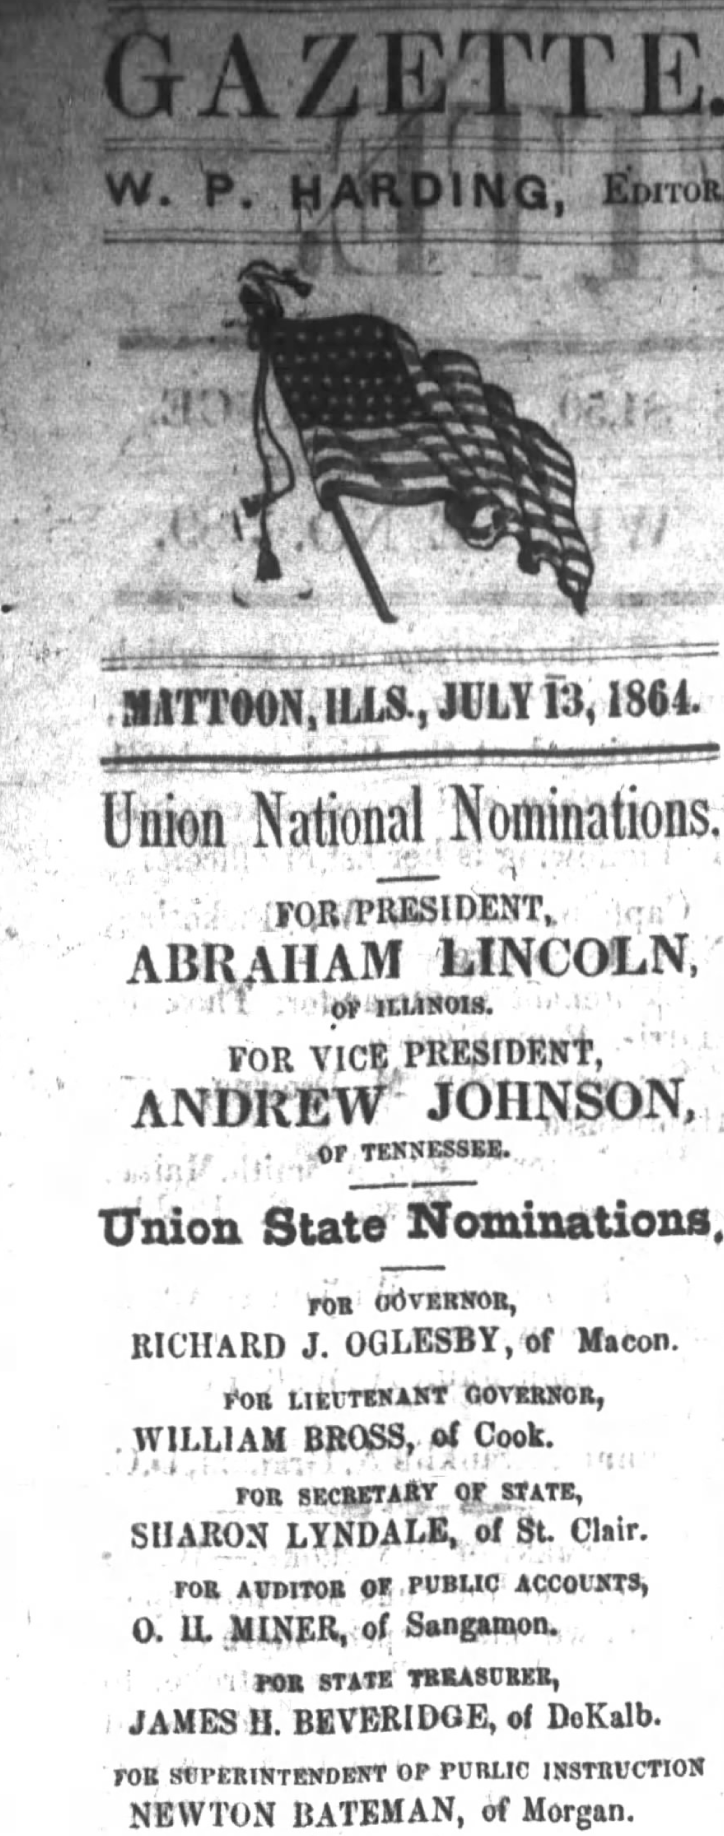 Union National Nominatoins